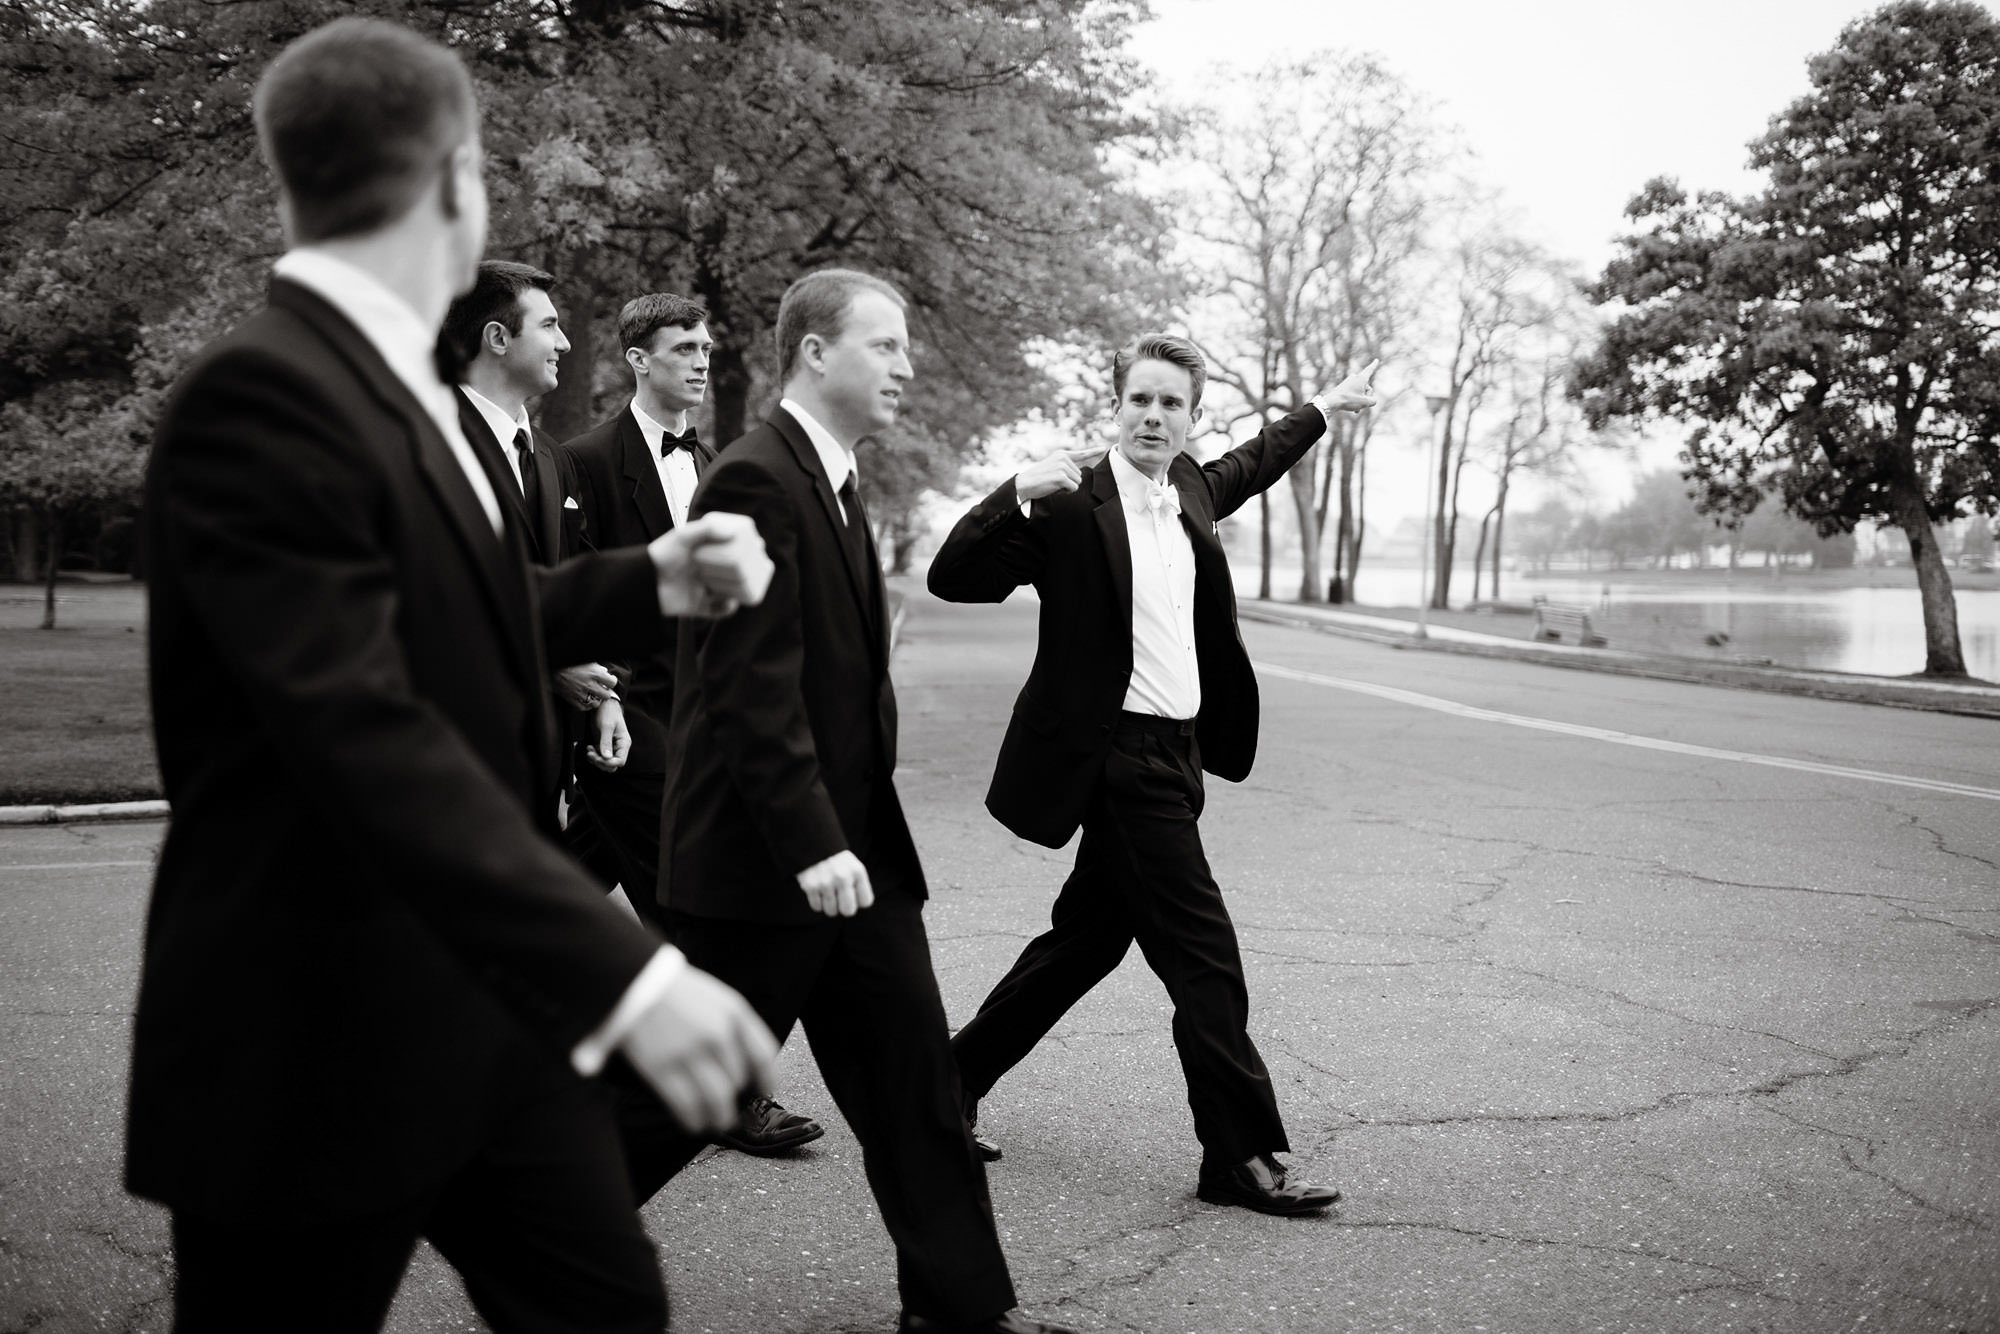 The groomsmen walk through Spring Lake, NJ prior to the wedding ceremony at St. Catherine's Church.